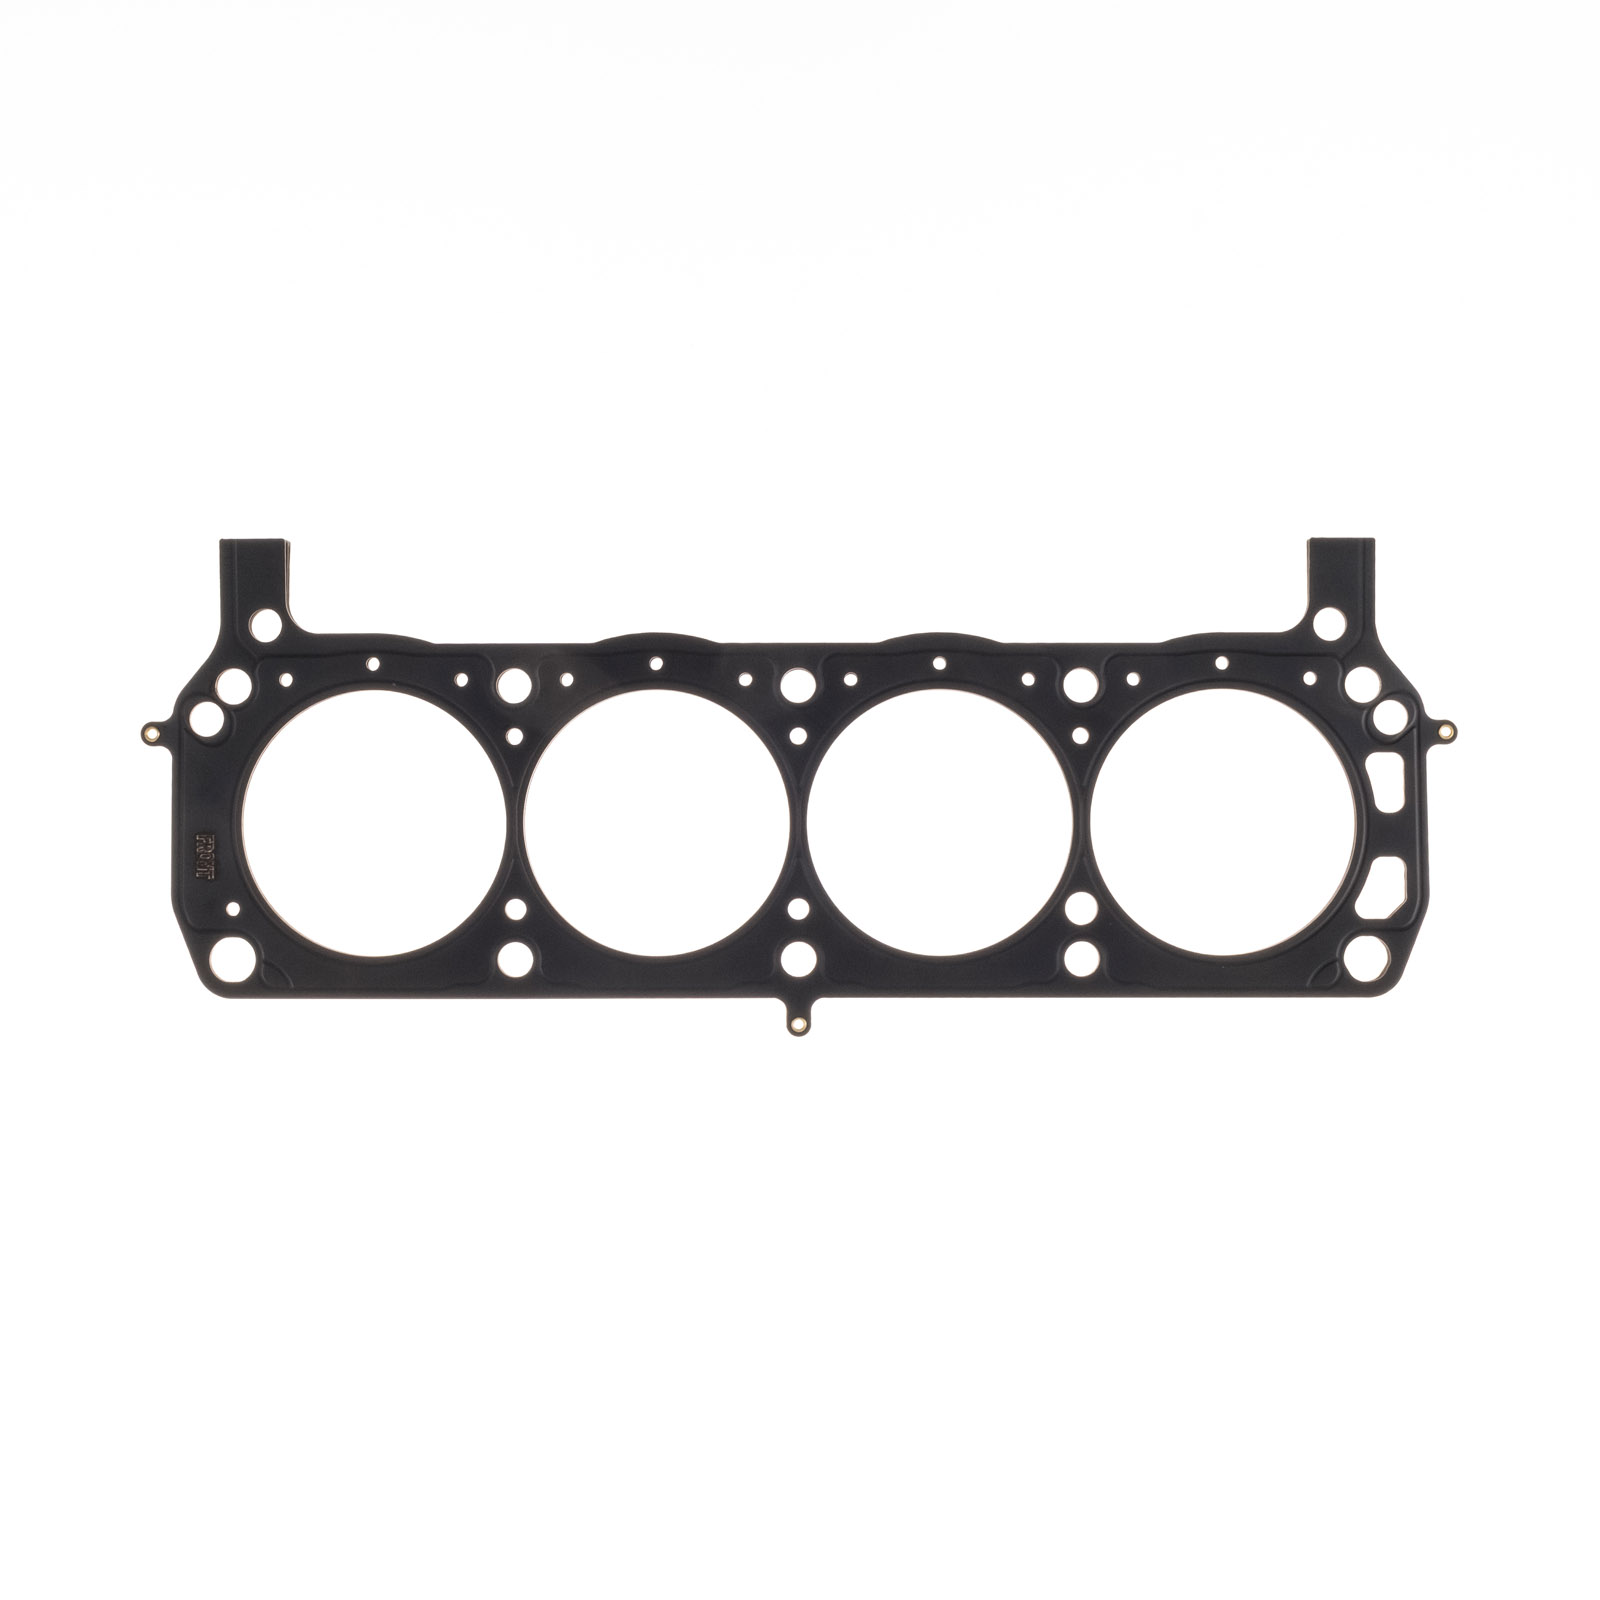 Cometic 0.04 Head Gasket for 1962-1968 Shelby Cobra C15371